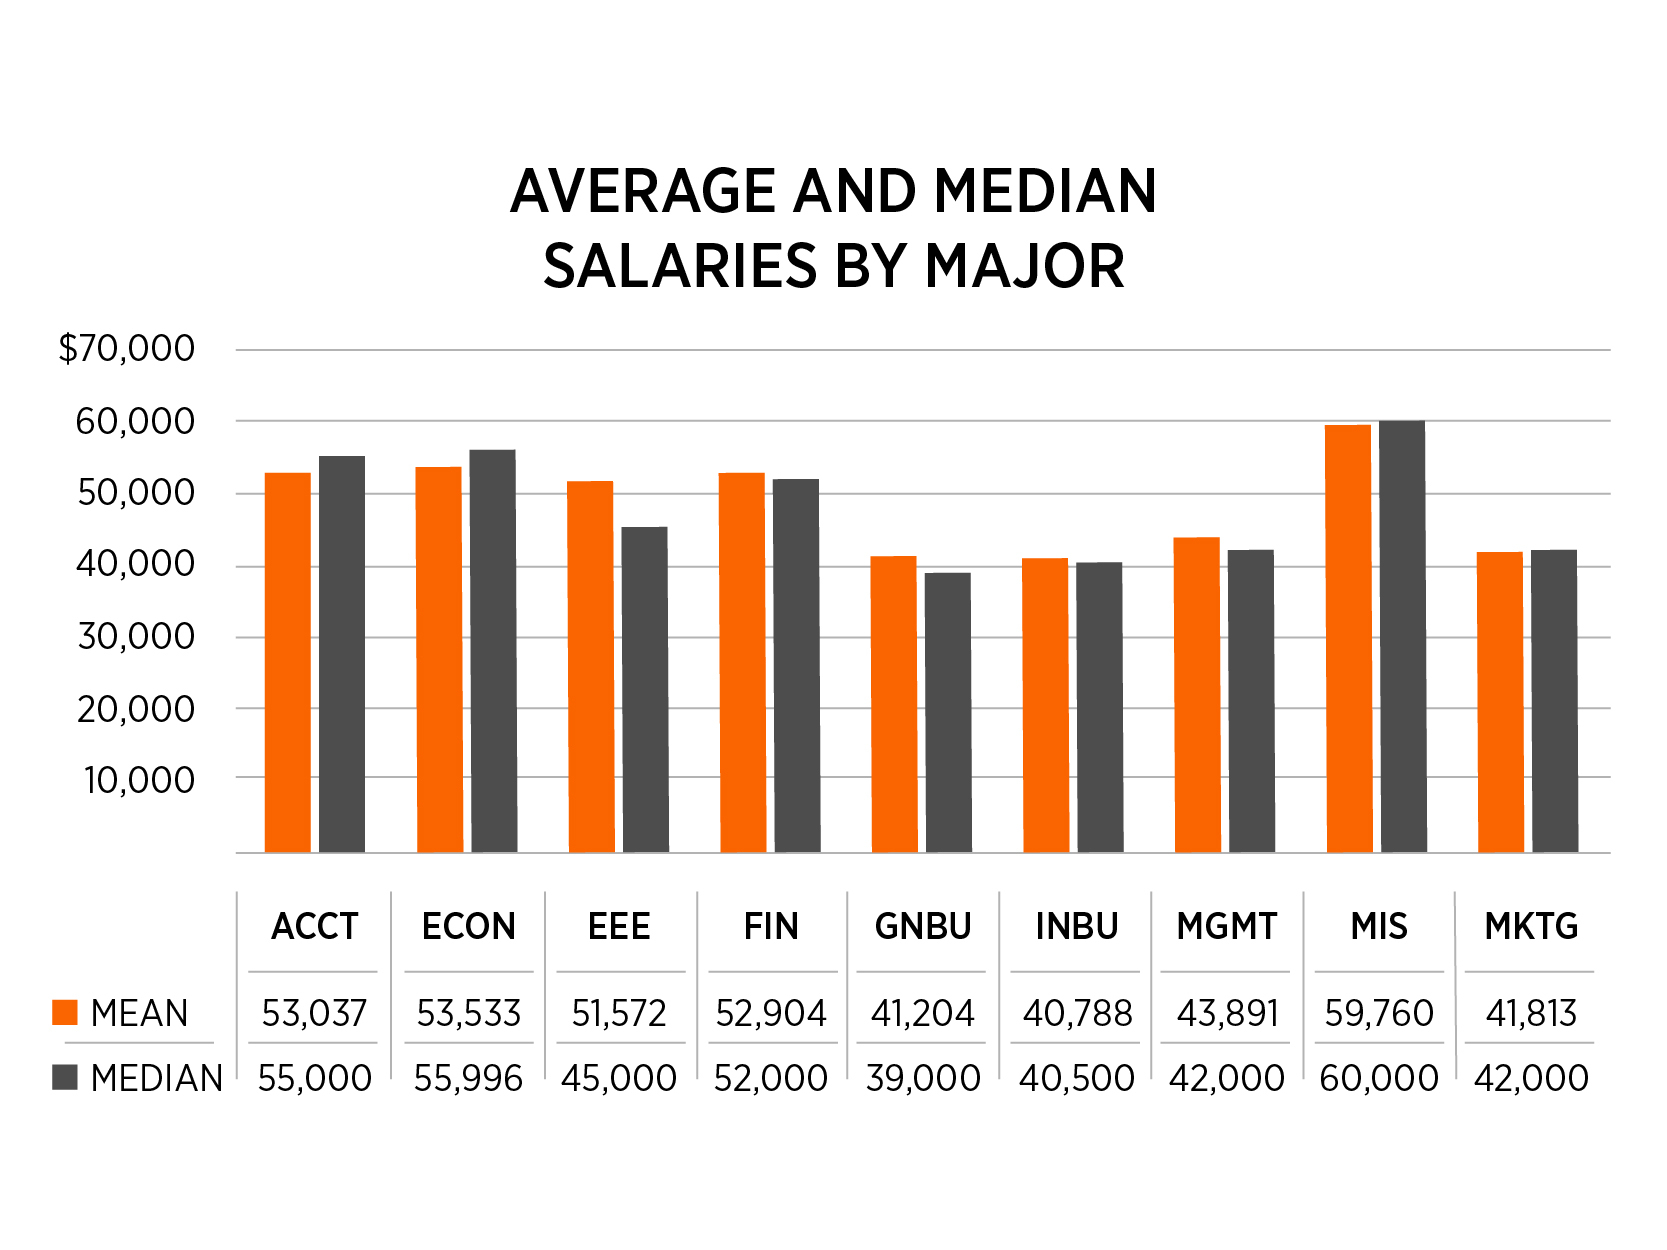 Chart detailing average and median salaries by major